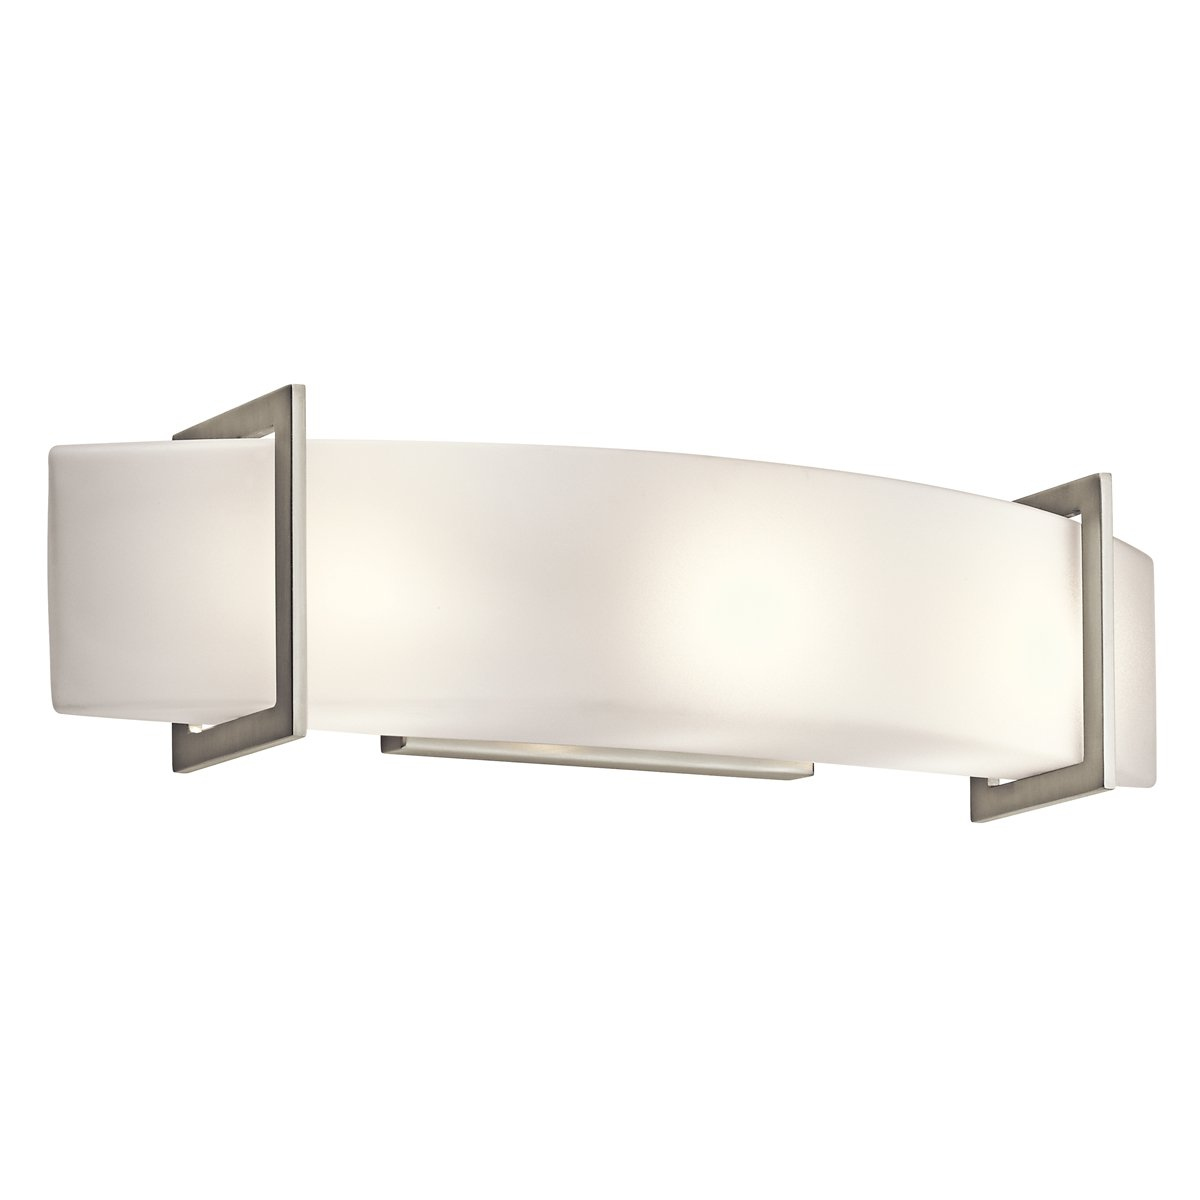 Kichler NI Crescent View Linear Wall Inch Brushed Nickel - Bathroom vanity lights in chrome